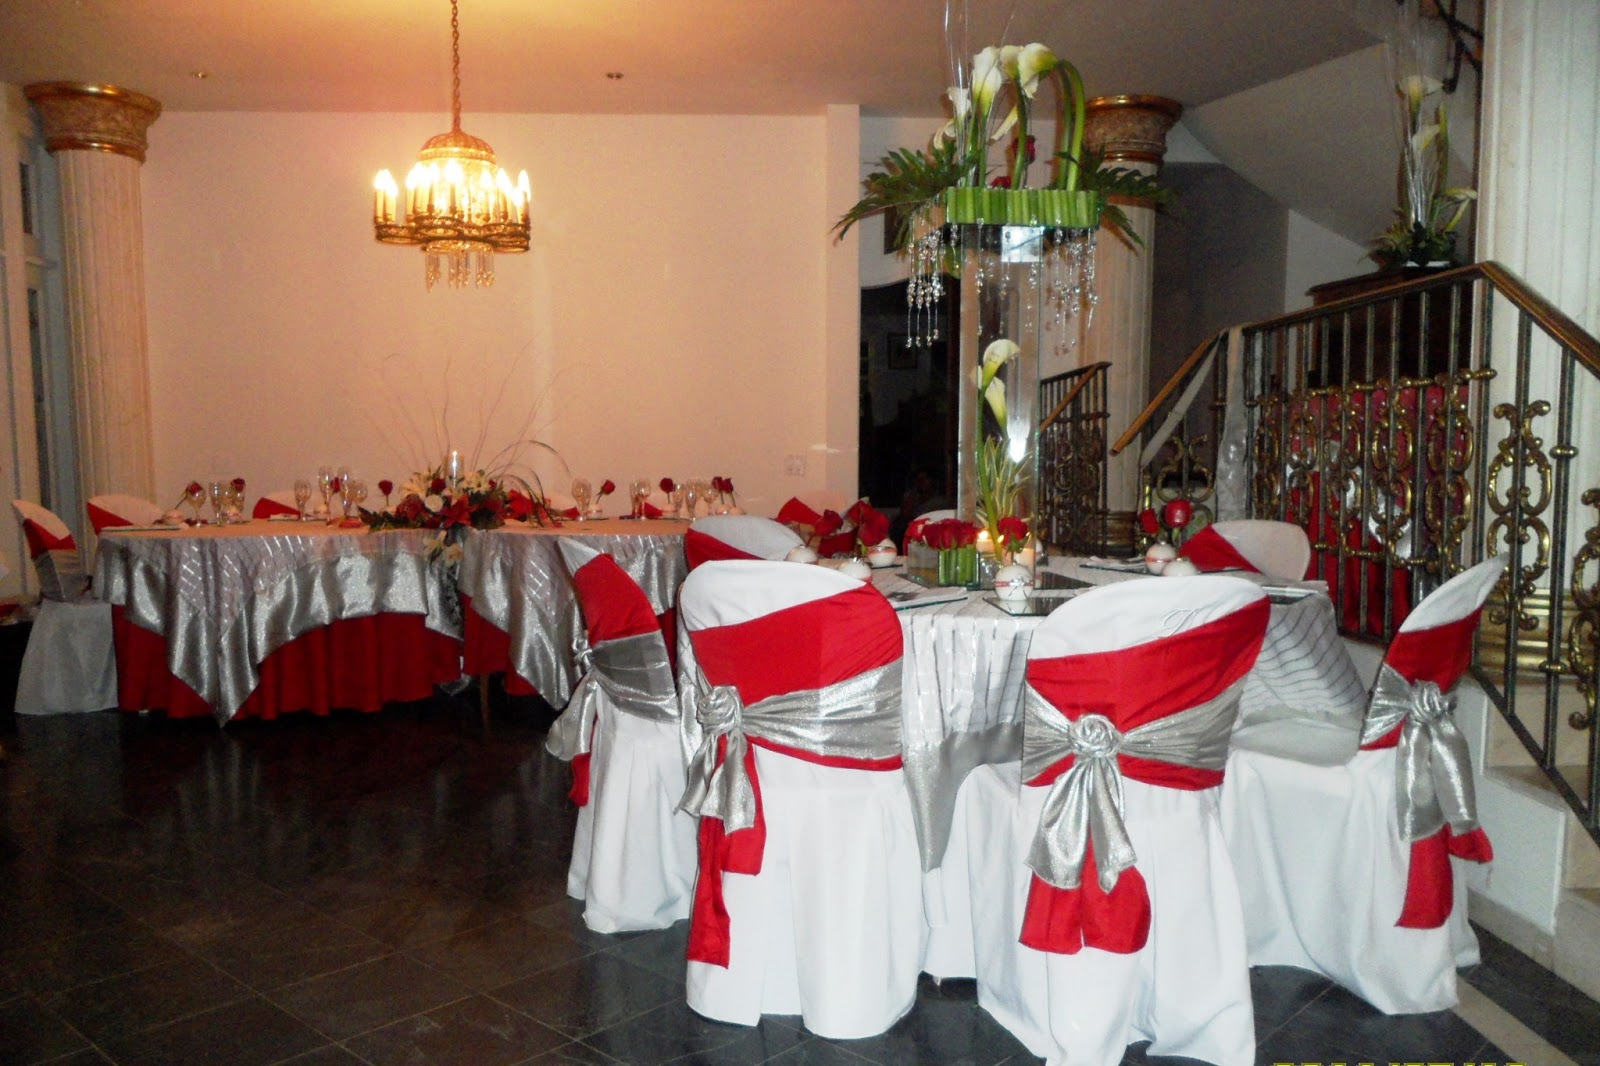 Decoracion matrimonio civil en casa for Decoracion de adornos